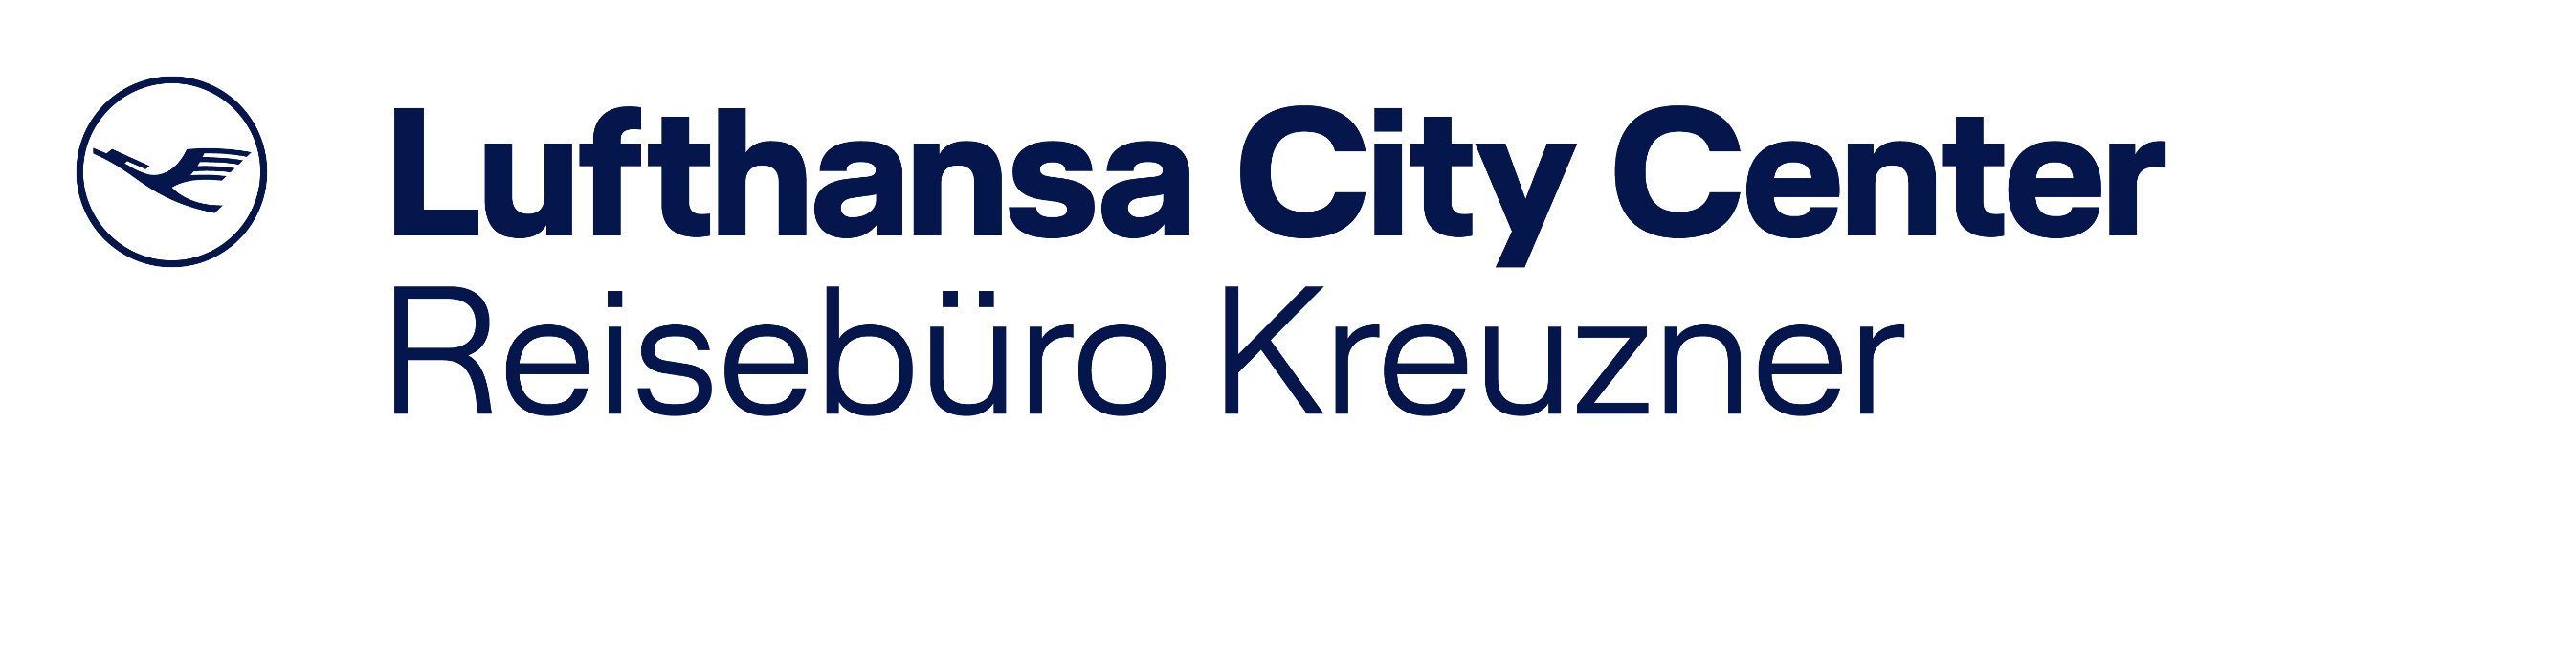 Lufthansa City Center Reisebüro Kreuzner